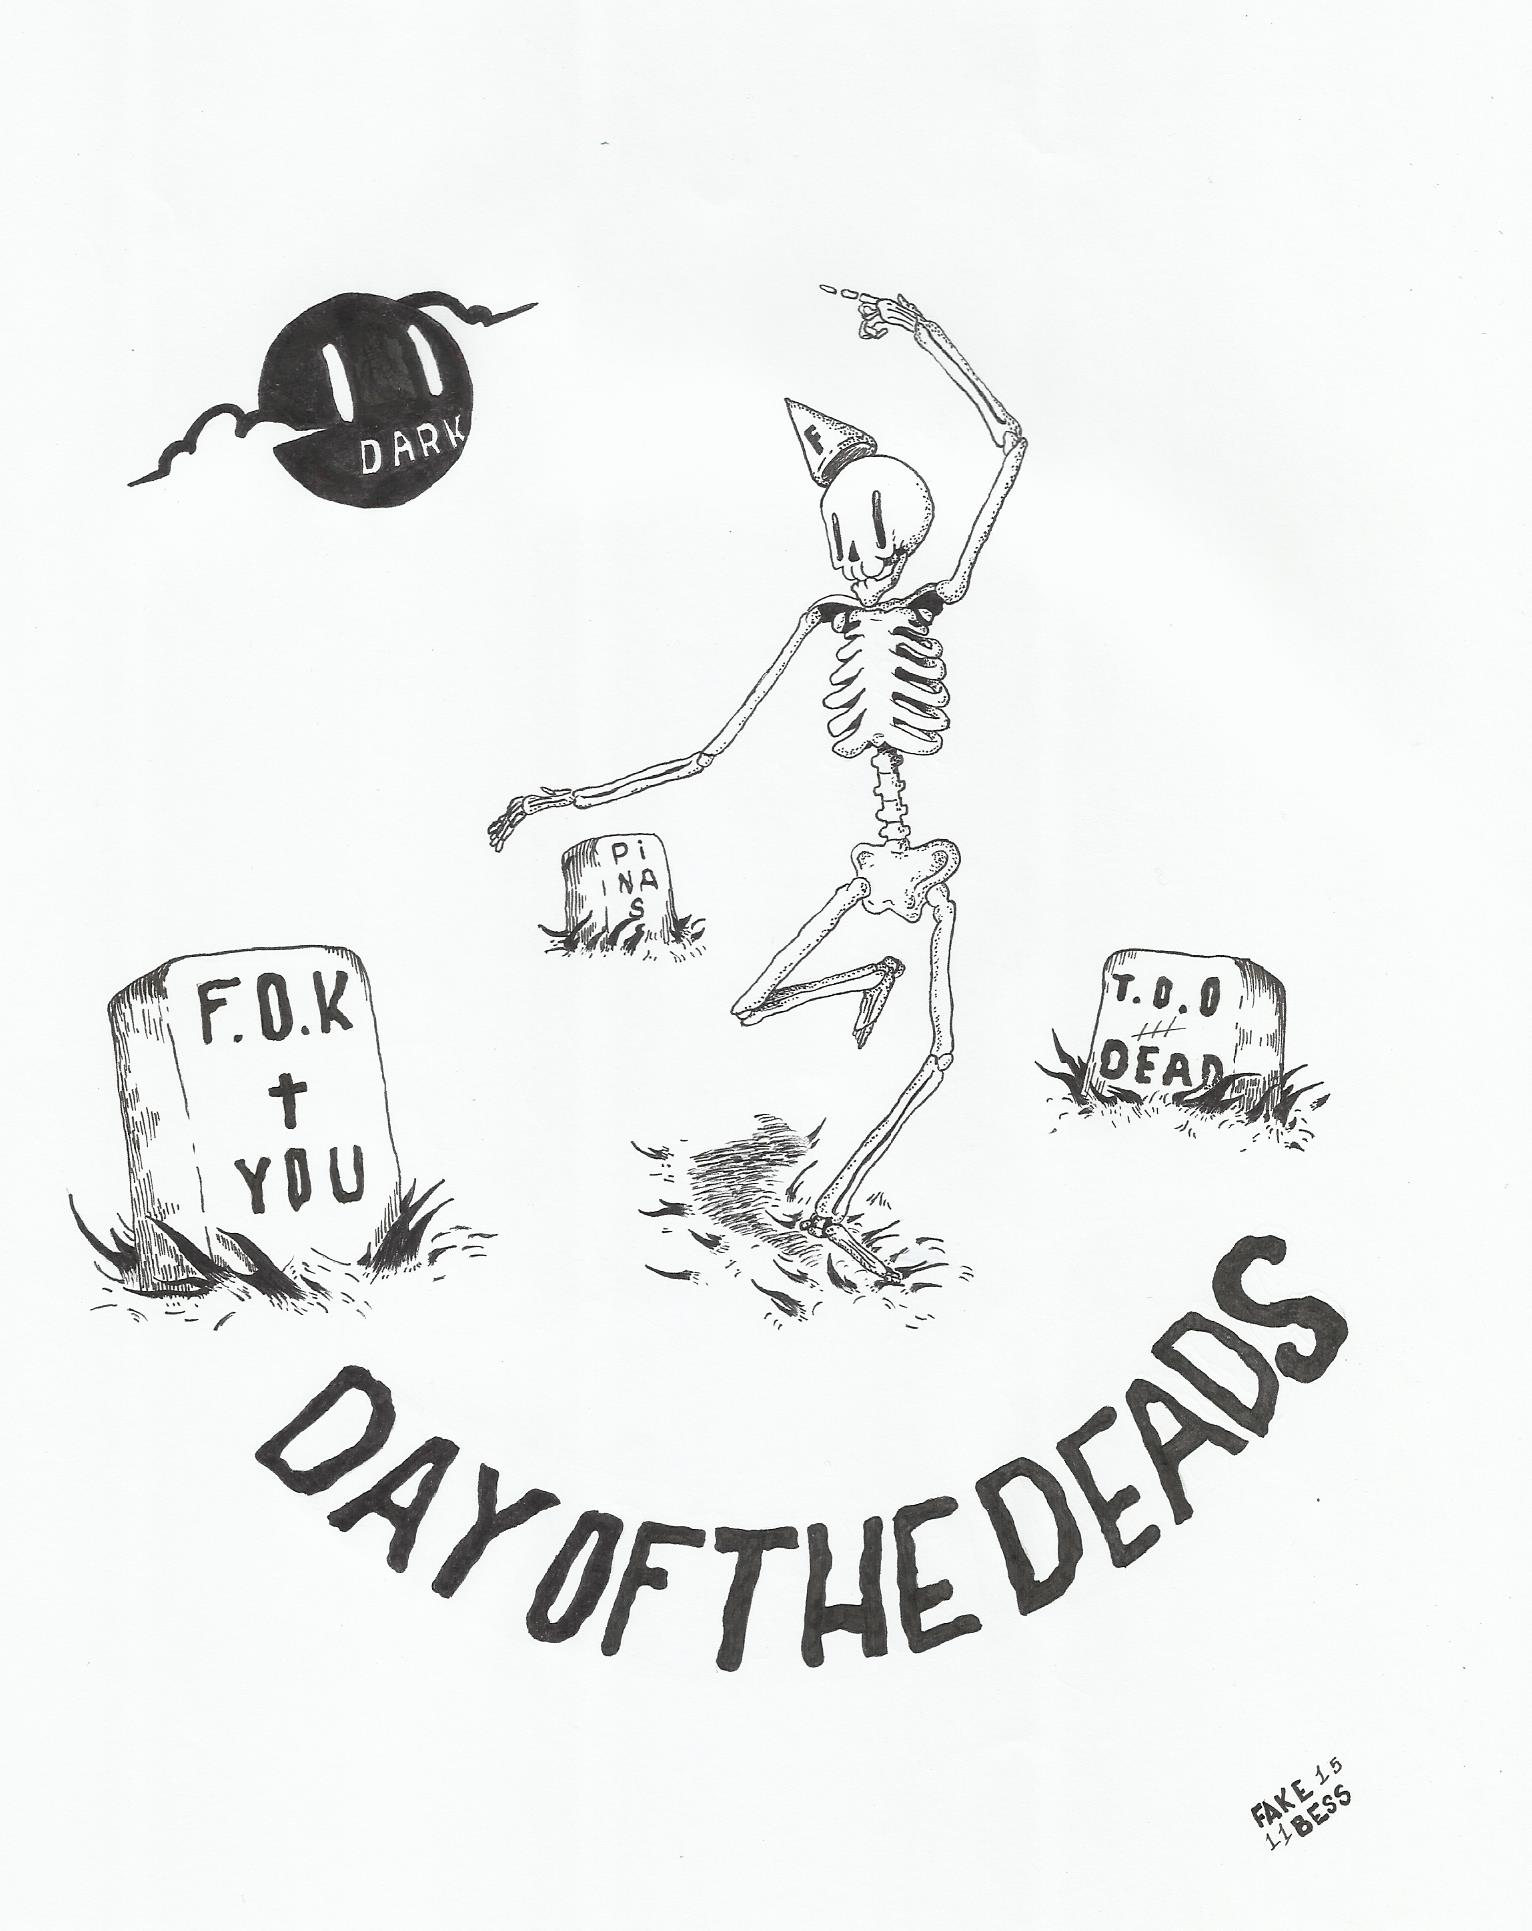 Day of the deadz